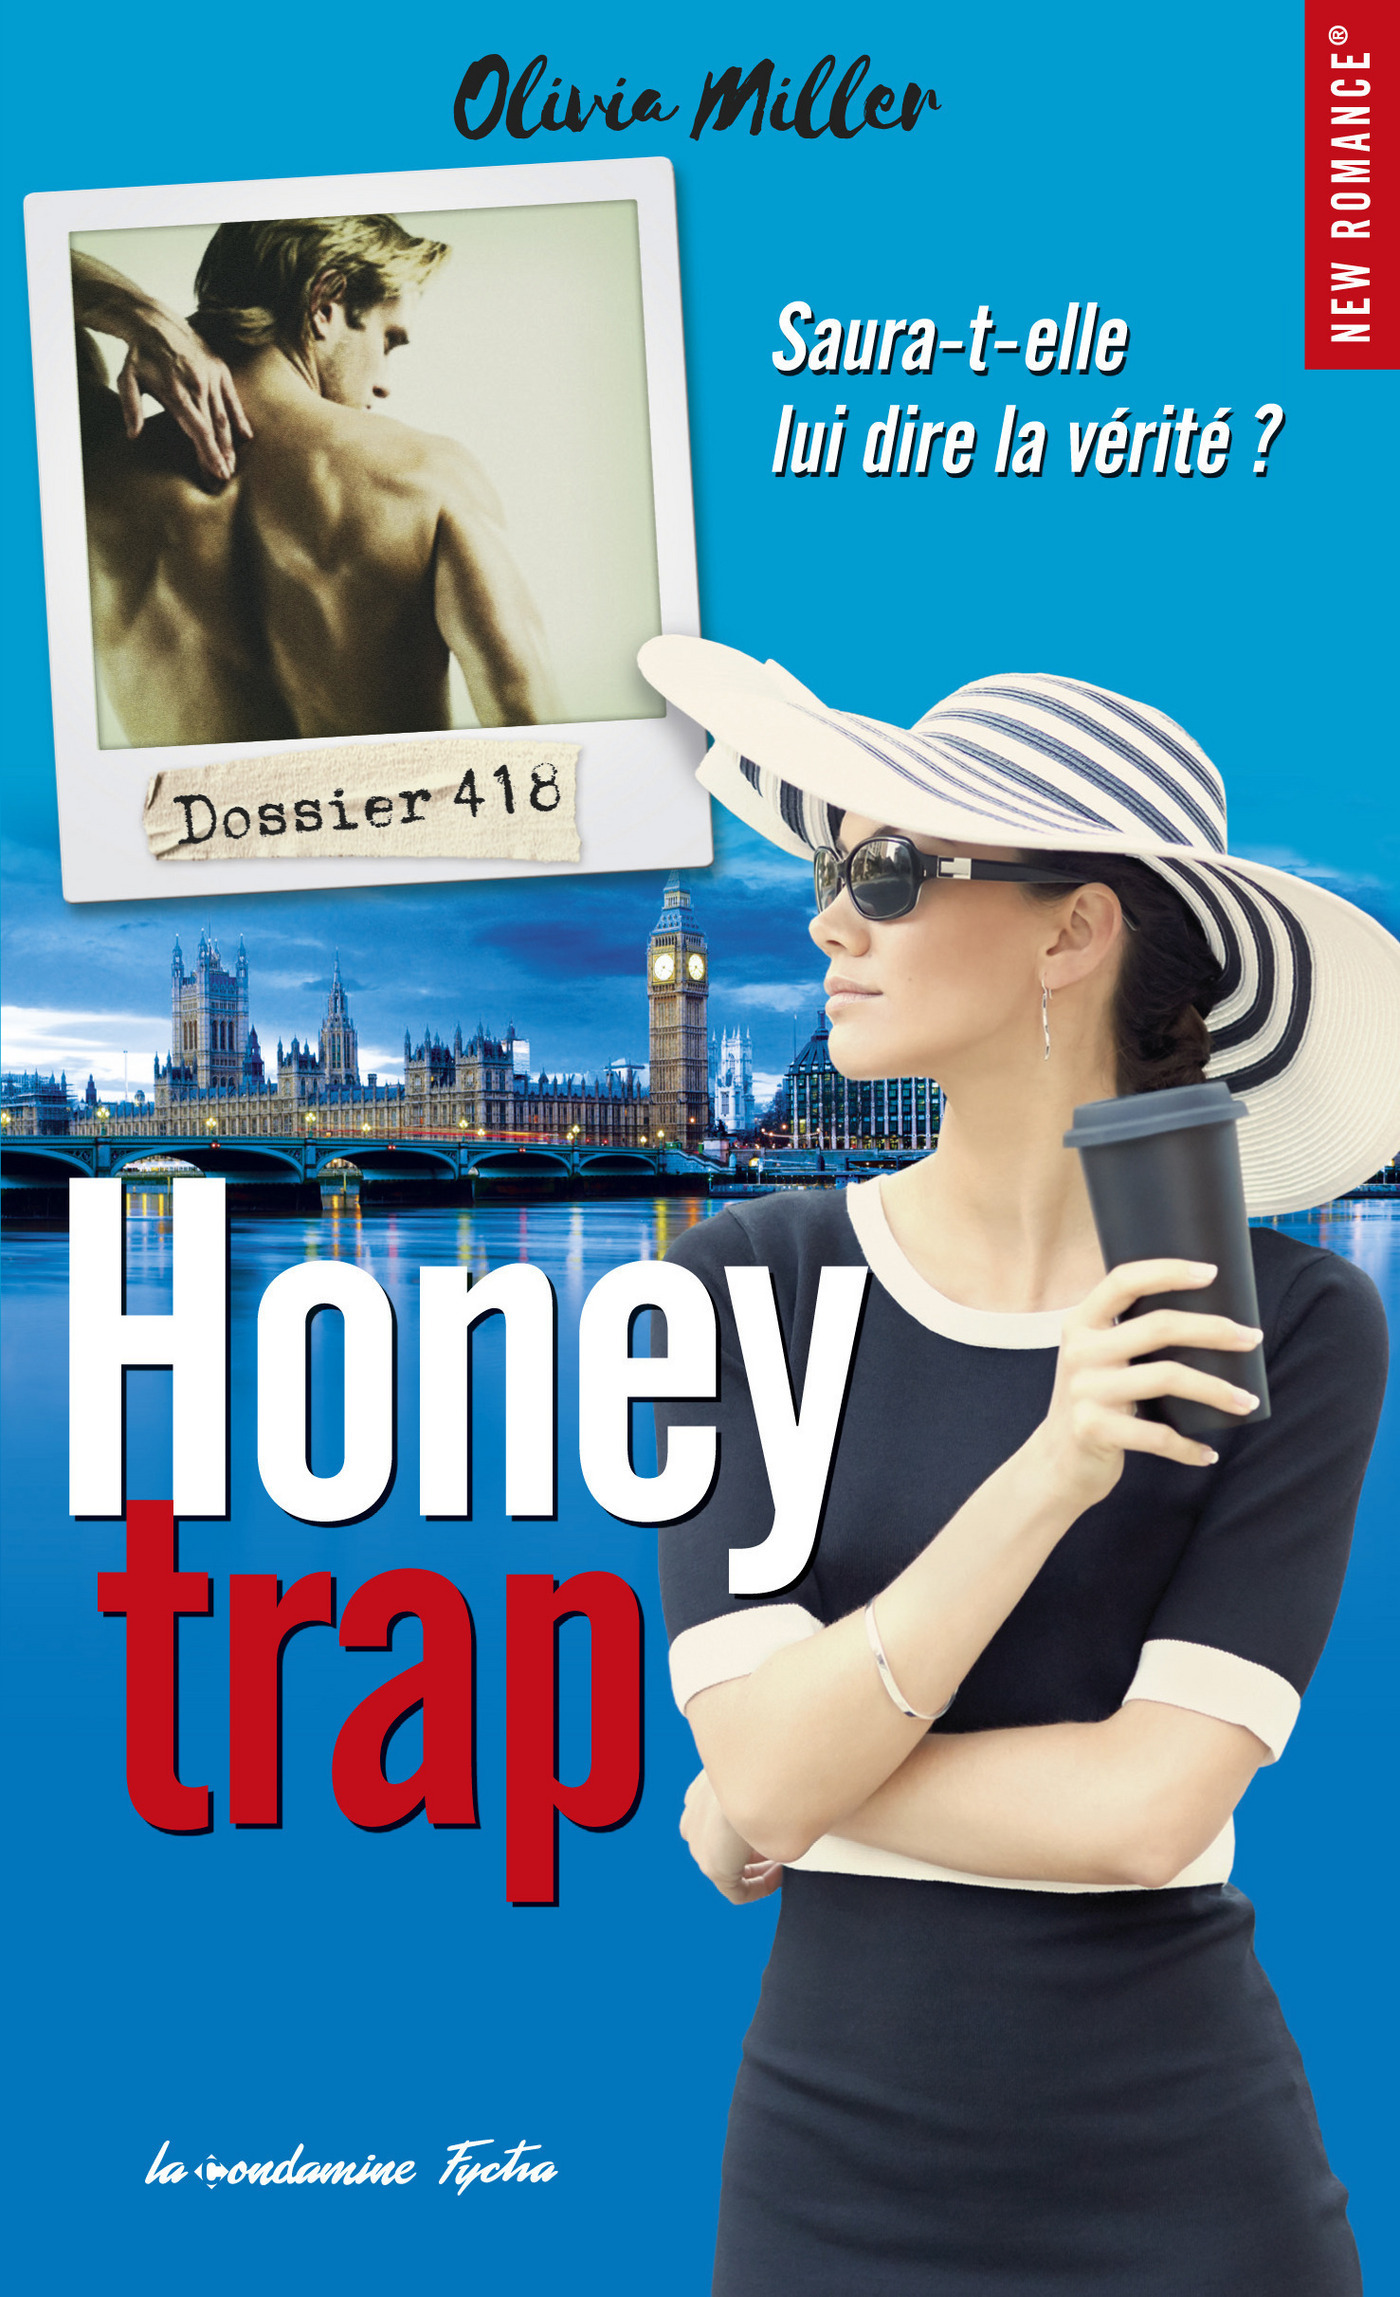 Honey trap